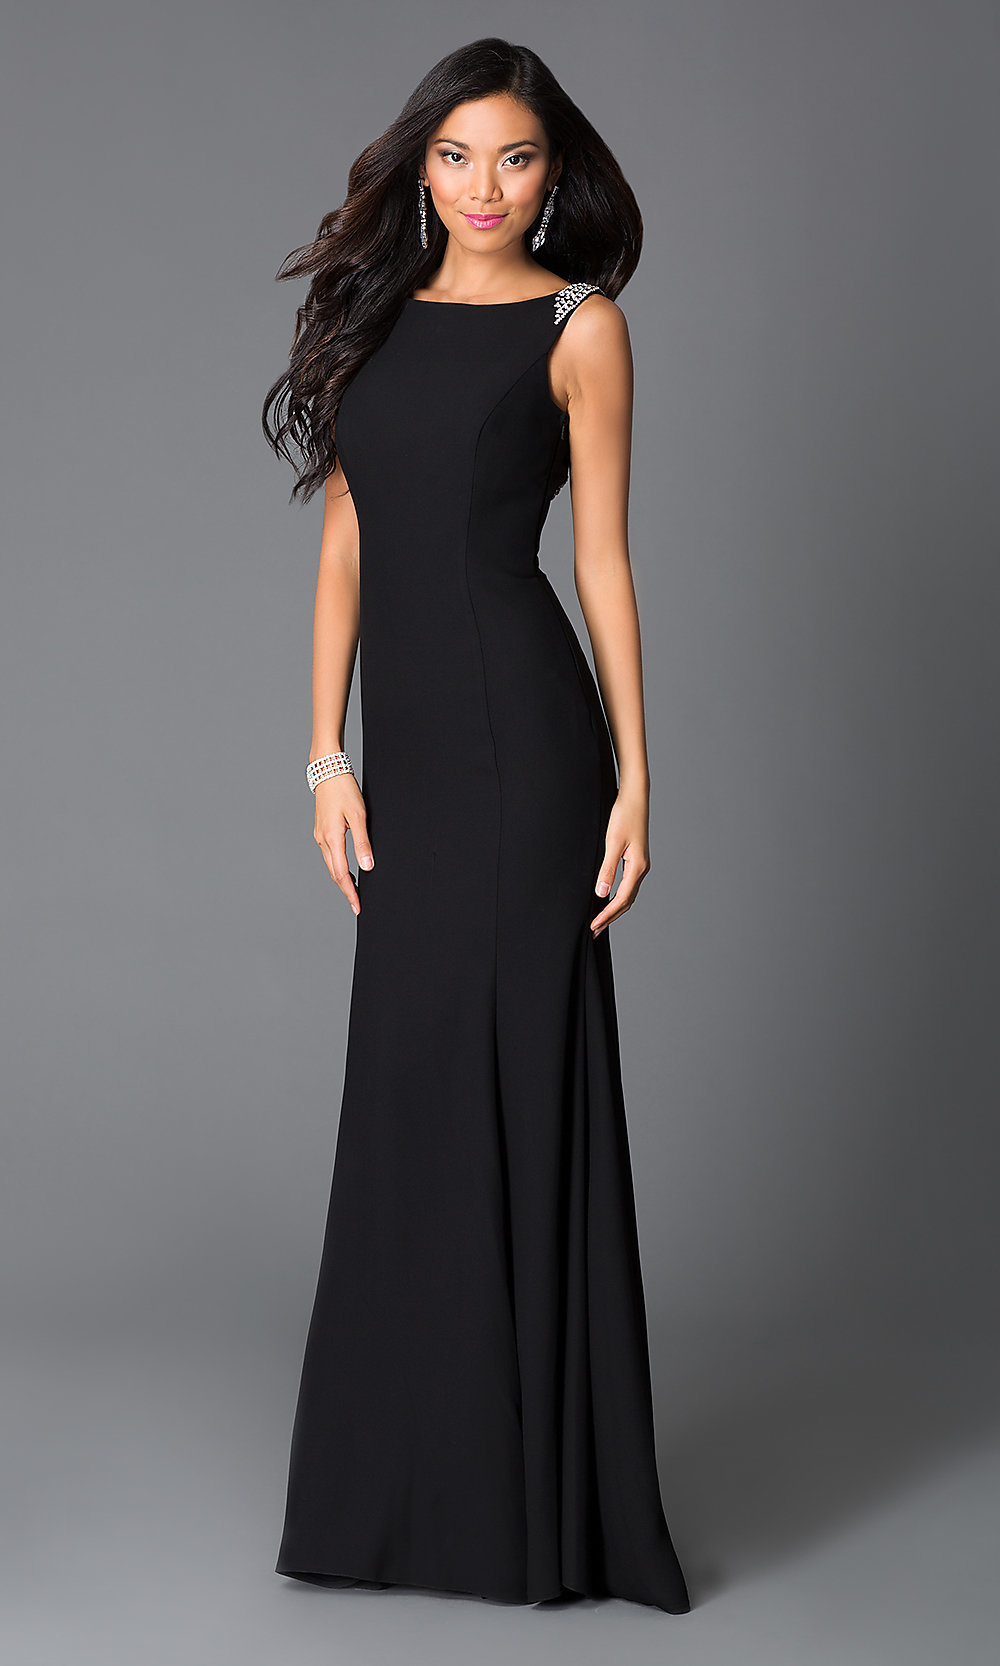 black formal dresses - Dress Yp